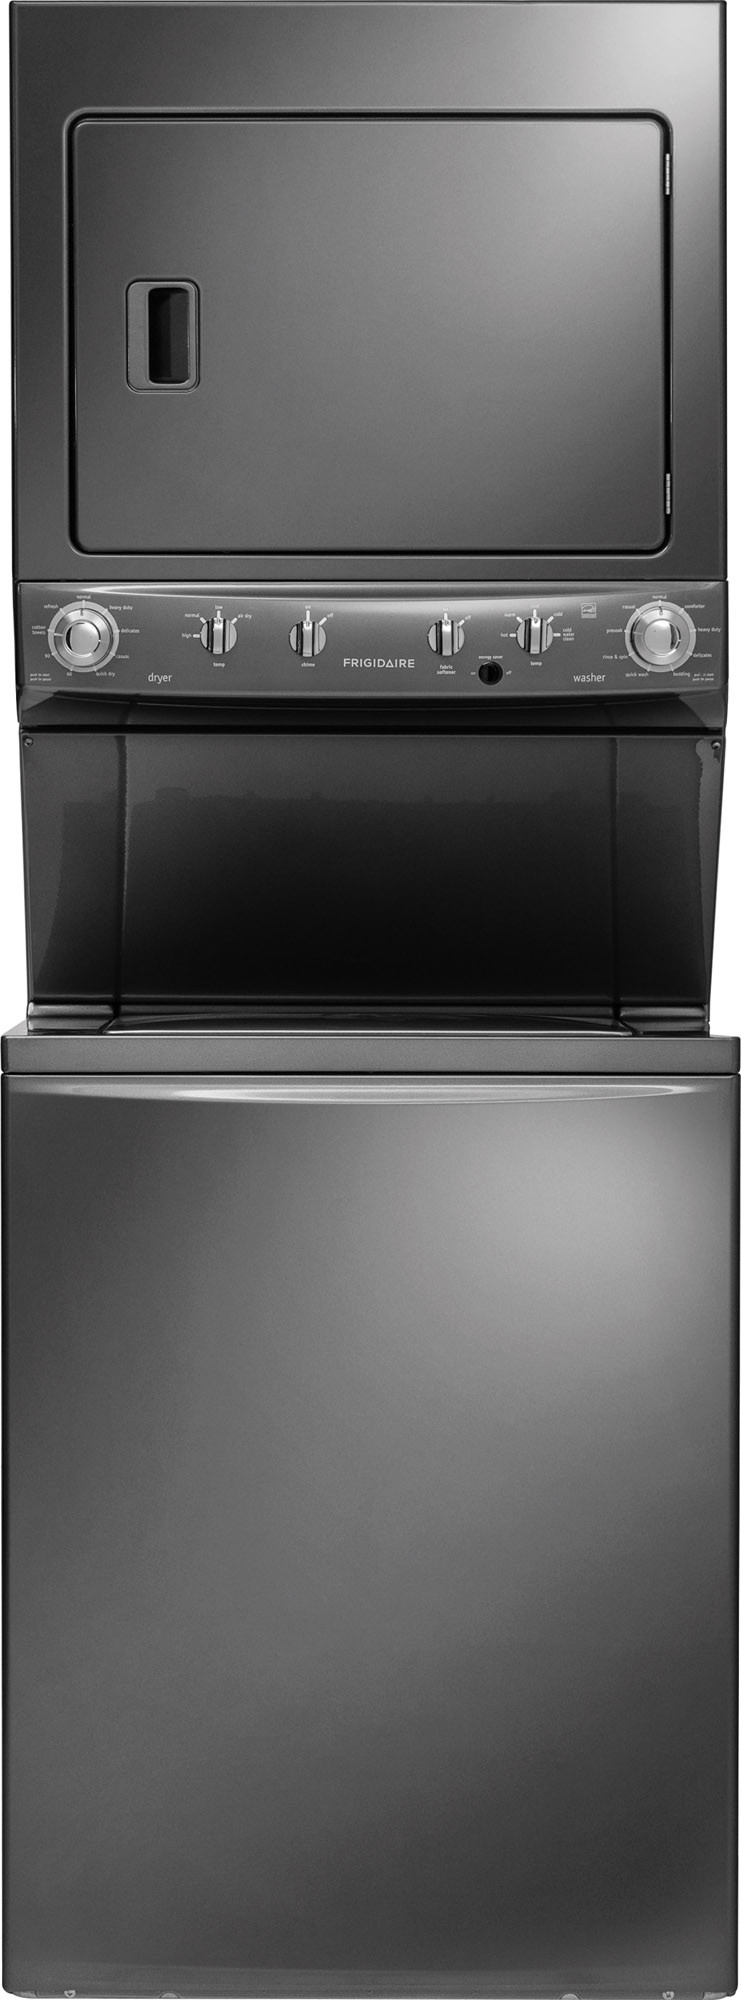 Frigidaire Ffle4033qt 27 Inch Electric Laundry Center With 38 Cu Washer And Dryer Knobs Front Load Ft 55 Energy Star 9 Wash Cycles Dry Quick Cycle